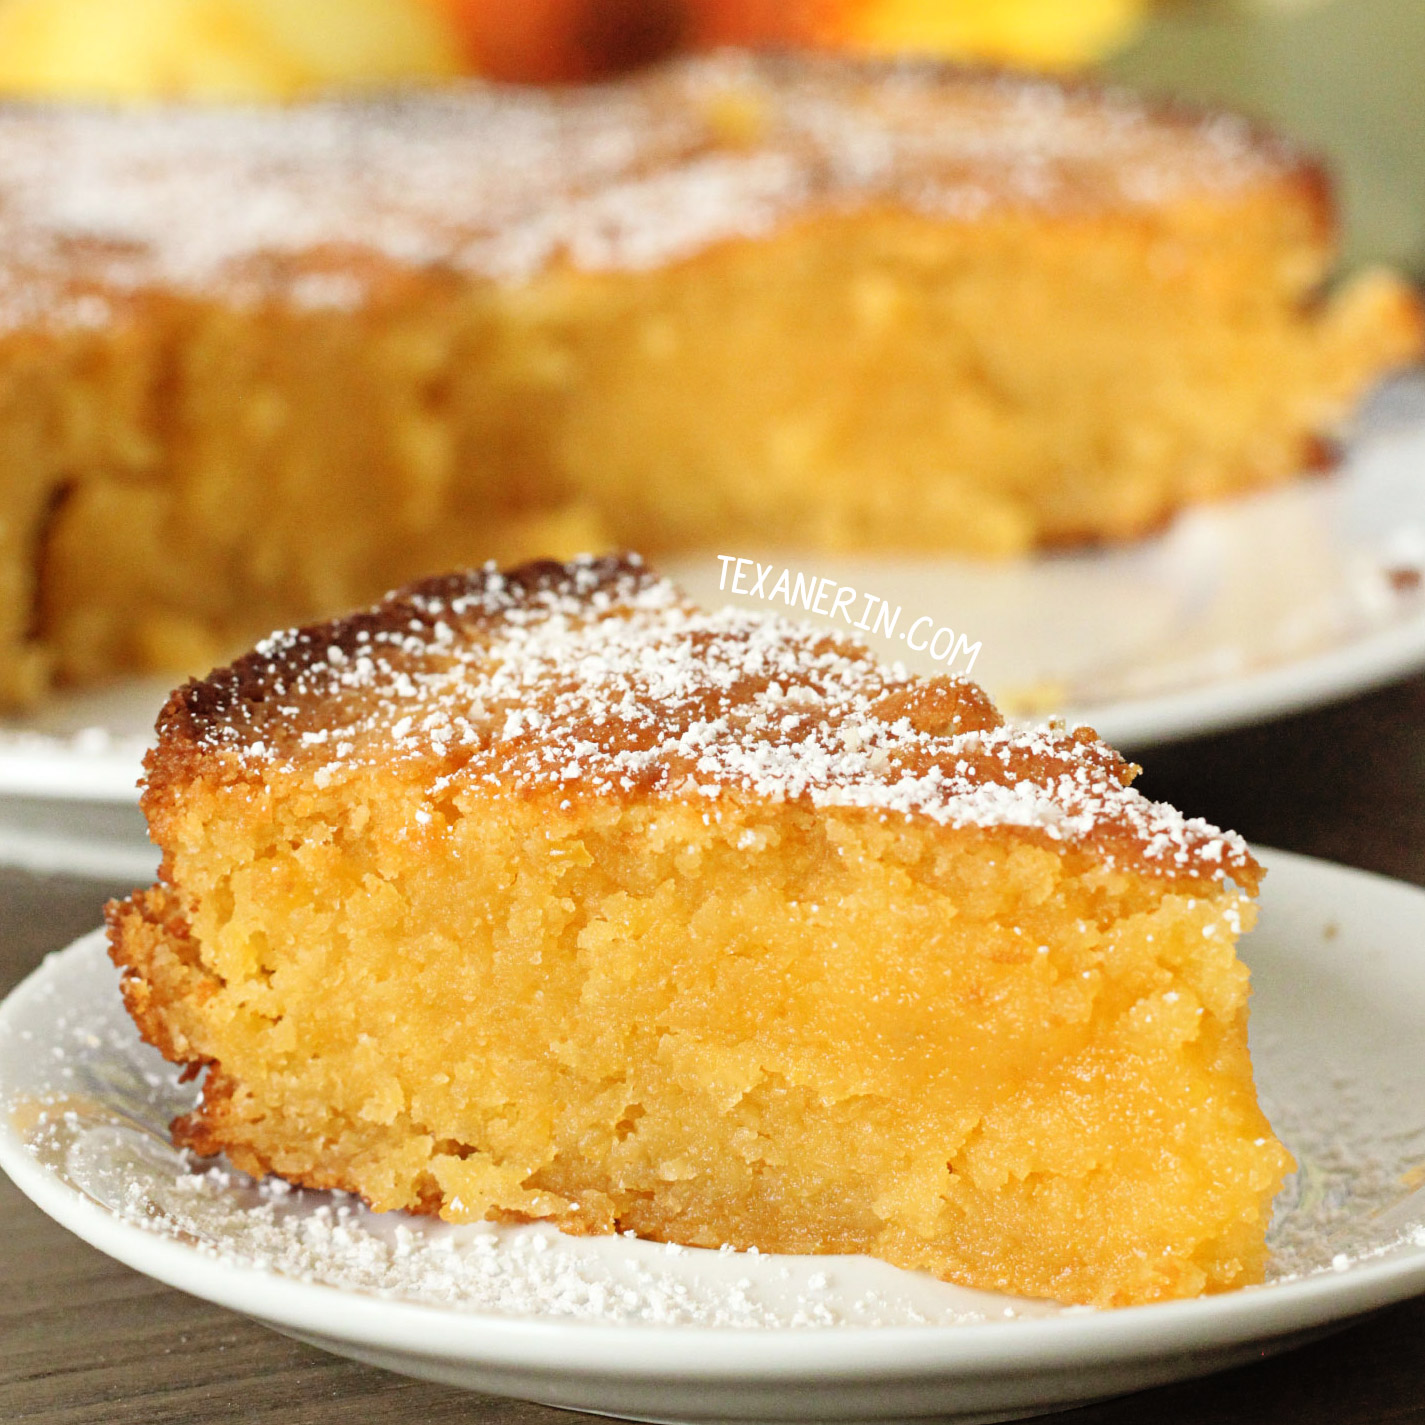 Italian Rice Cake With Orange